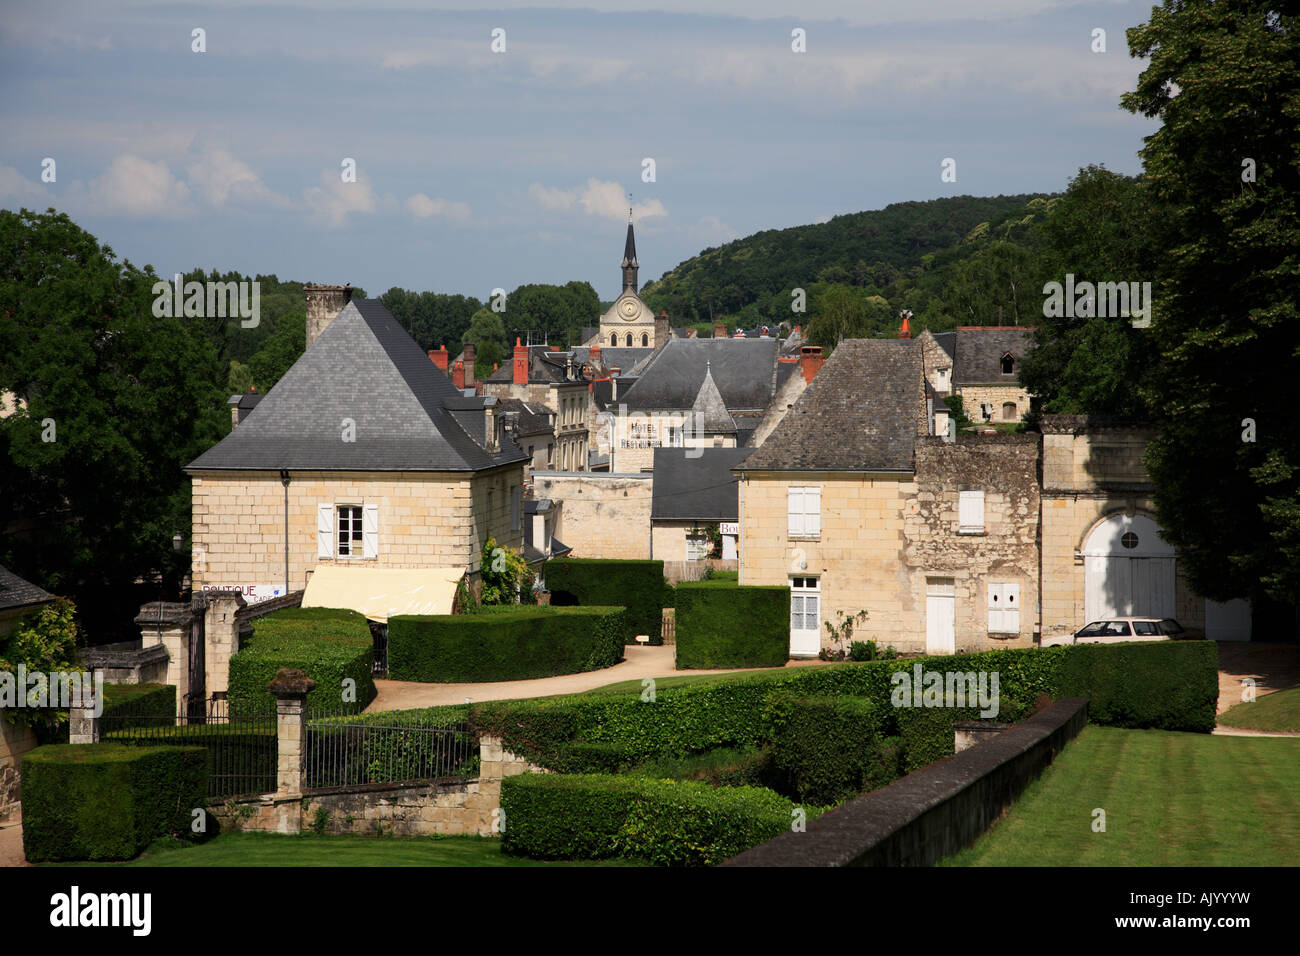 The village of Ussé seen from the grounds of the Château - Stock Image